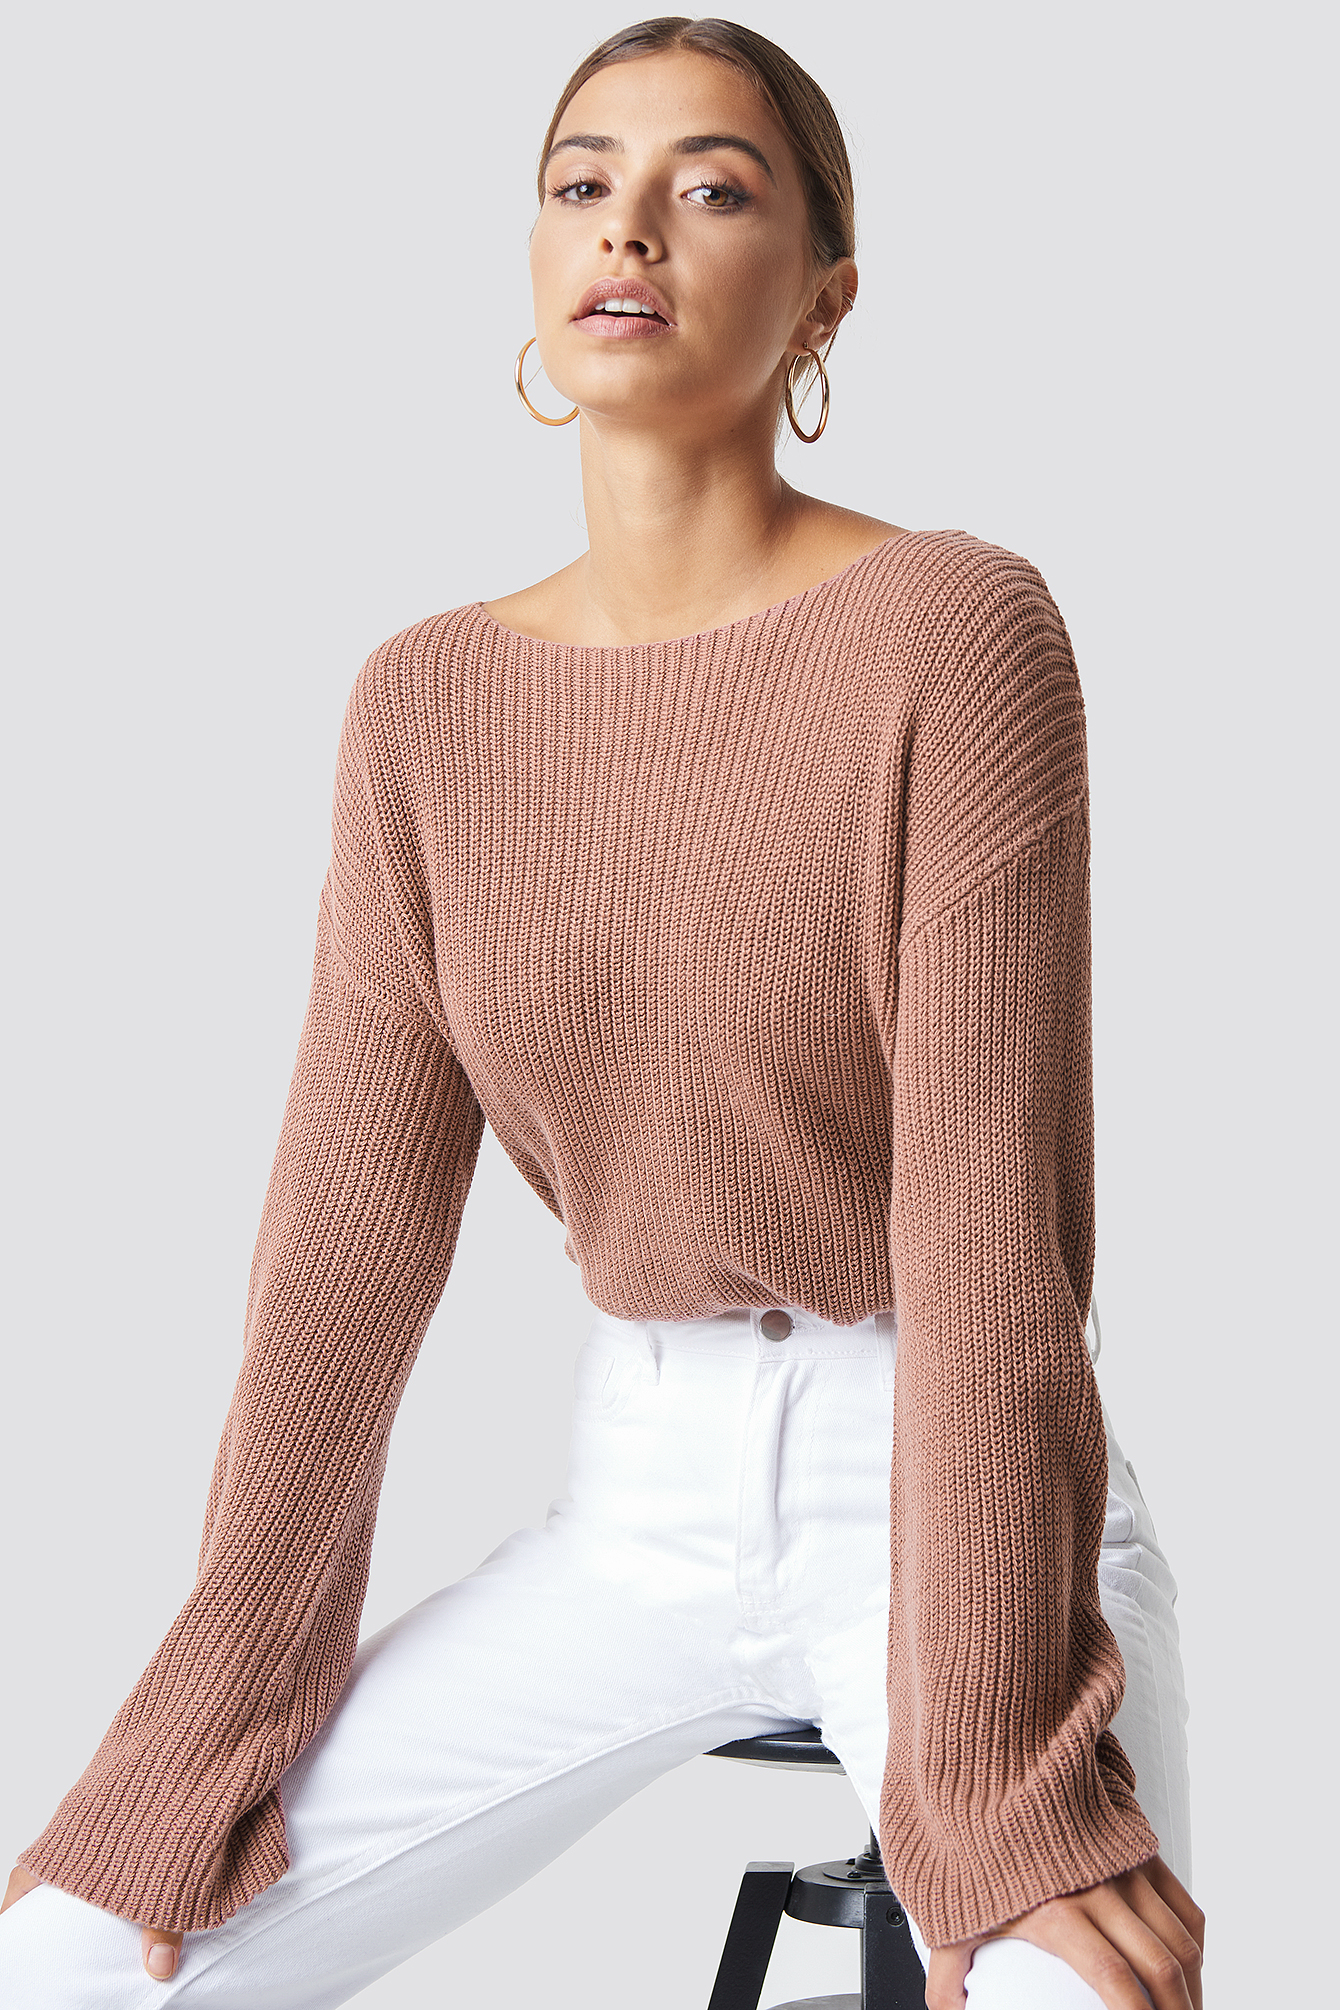 Cropped Long Sleeve Knitted Sweater Lyserød by Na Kd